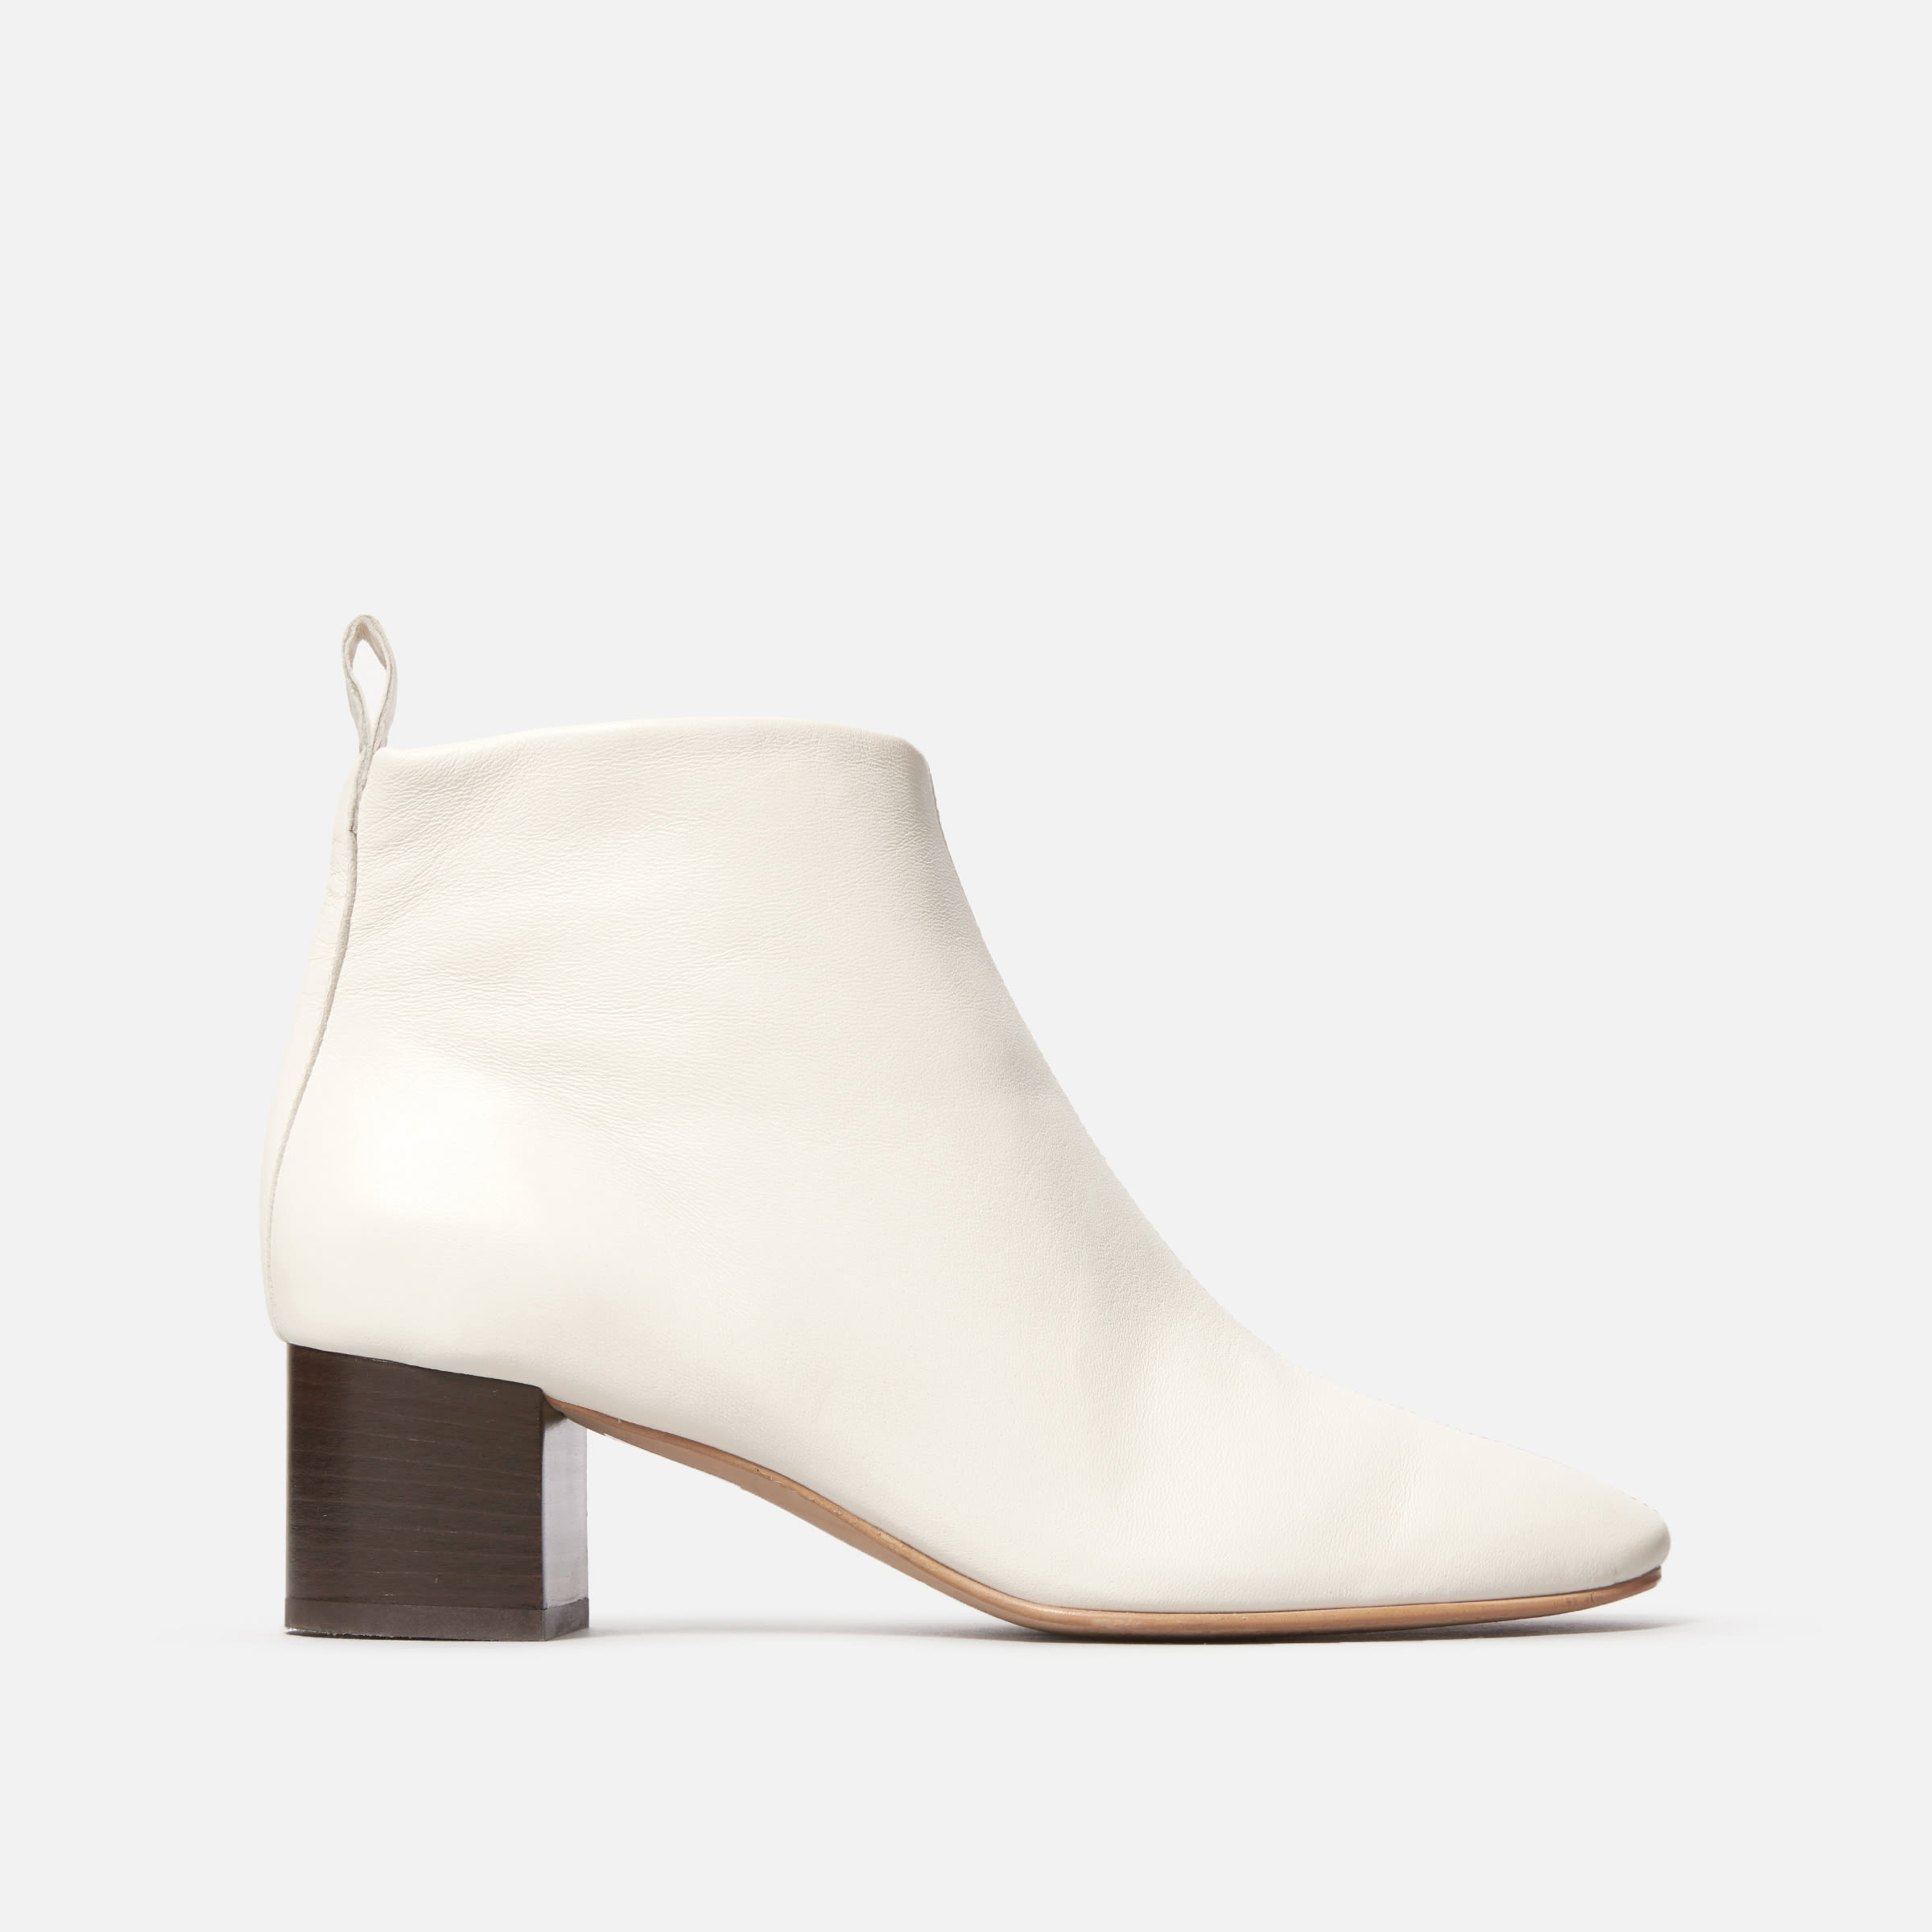 DetailsRuns true to size. Take your true size for a snug, glove-like fit. These will give with ti...   Everlane